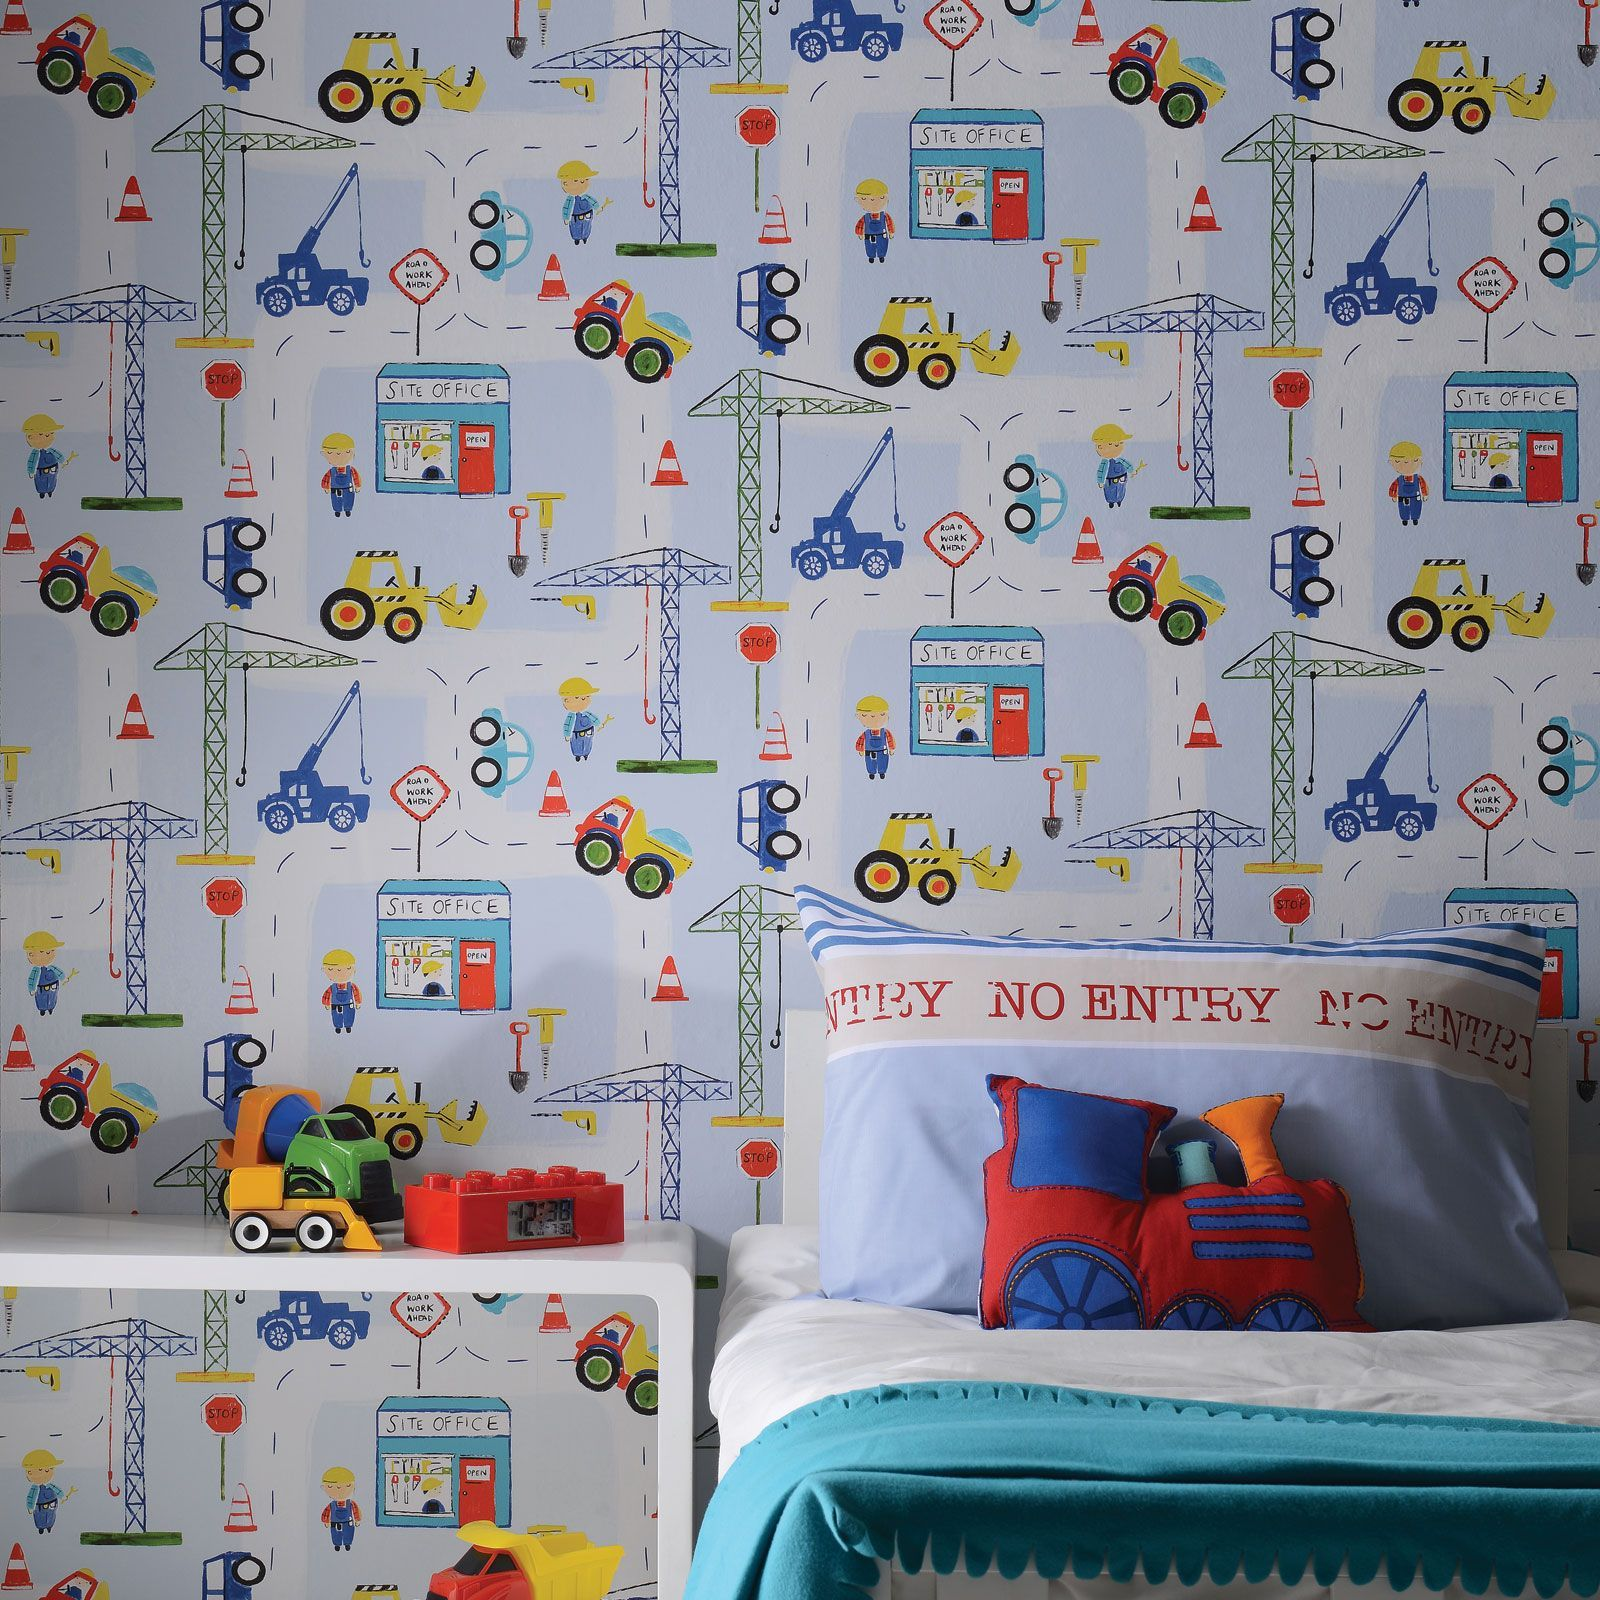 Transport And Vehicles Themed Wallpaper U0026 Borders Bedroom Feature Wall Decor